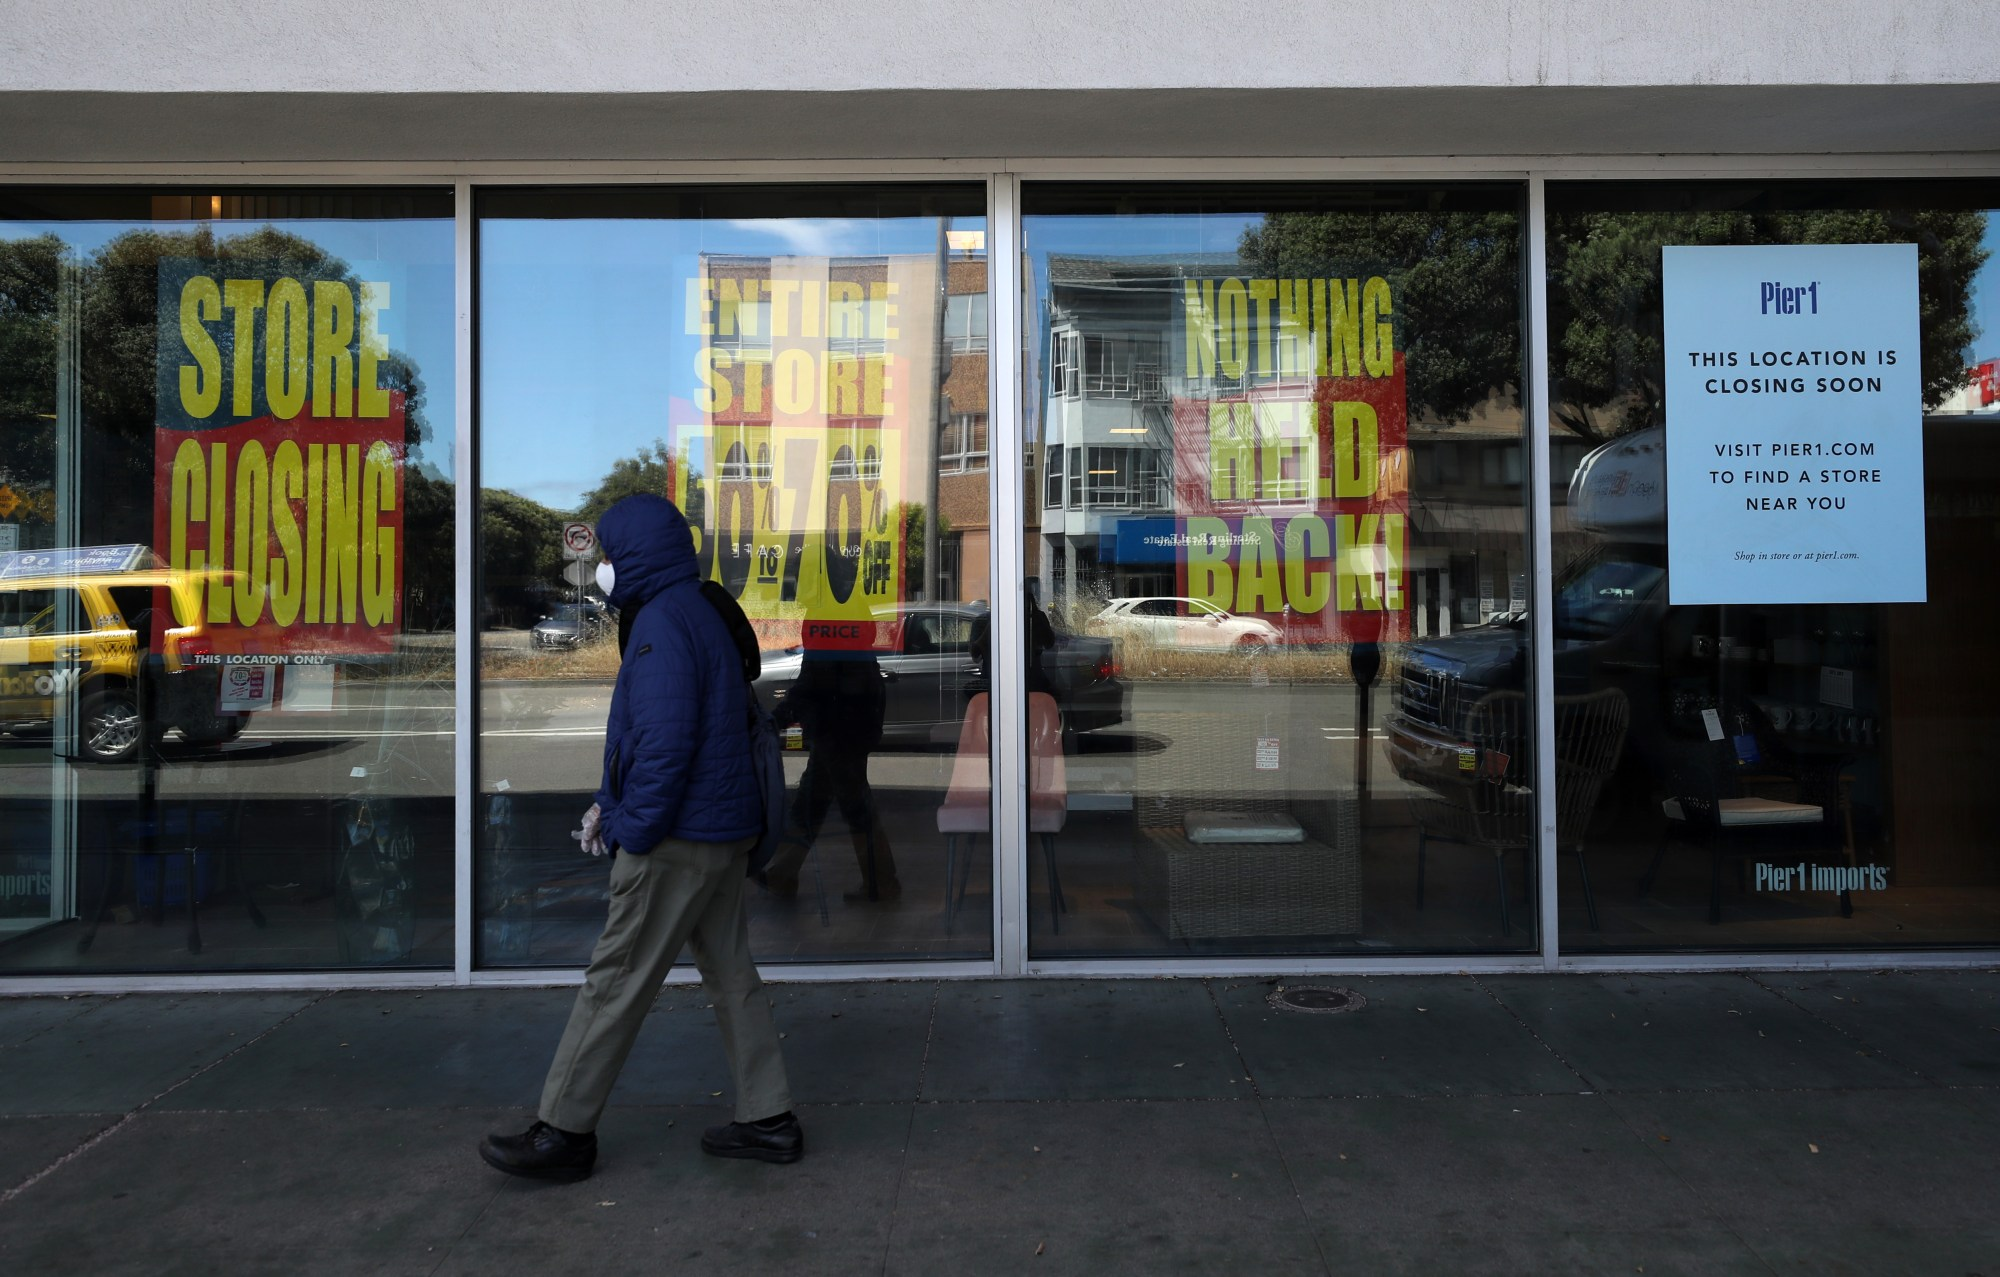 A pedestrian walks by a closed Pier 1 store on May 19, 2020 in San Francisco, California. (Justin Sullivan/Getty Images)